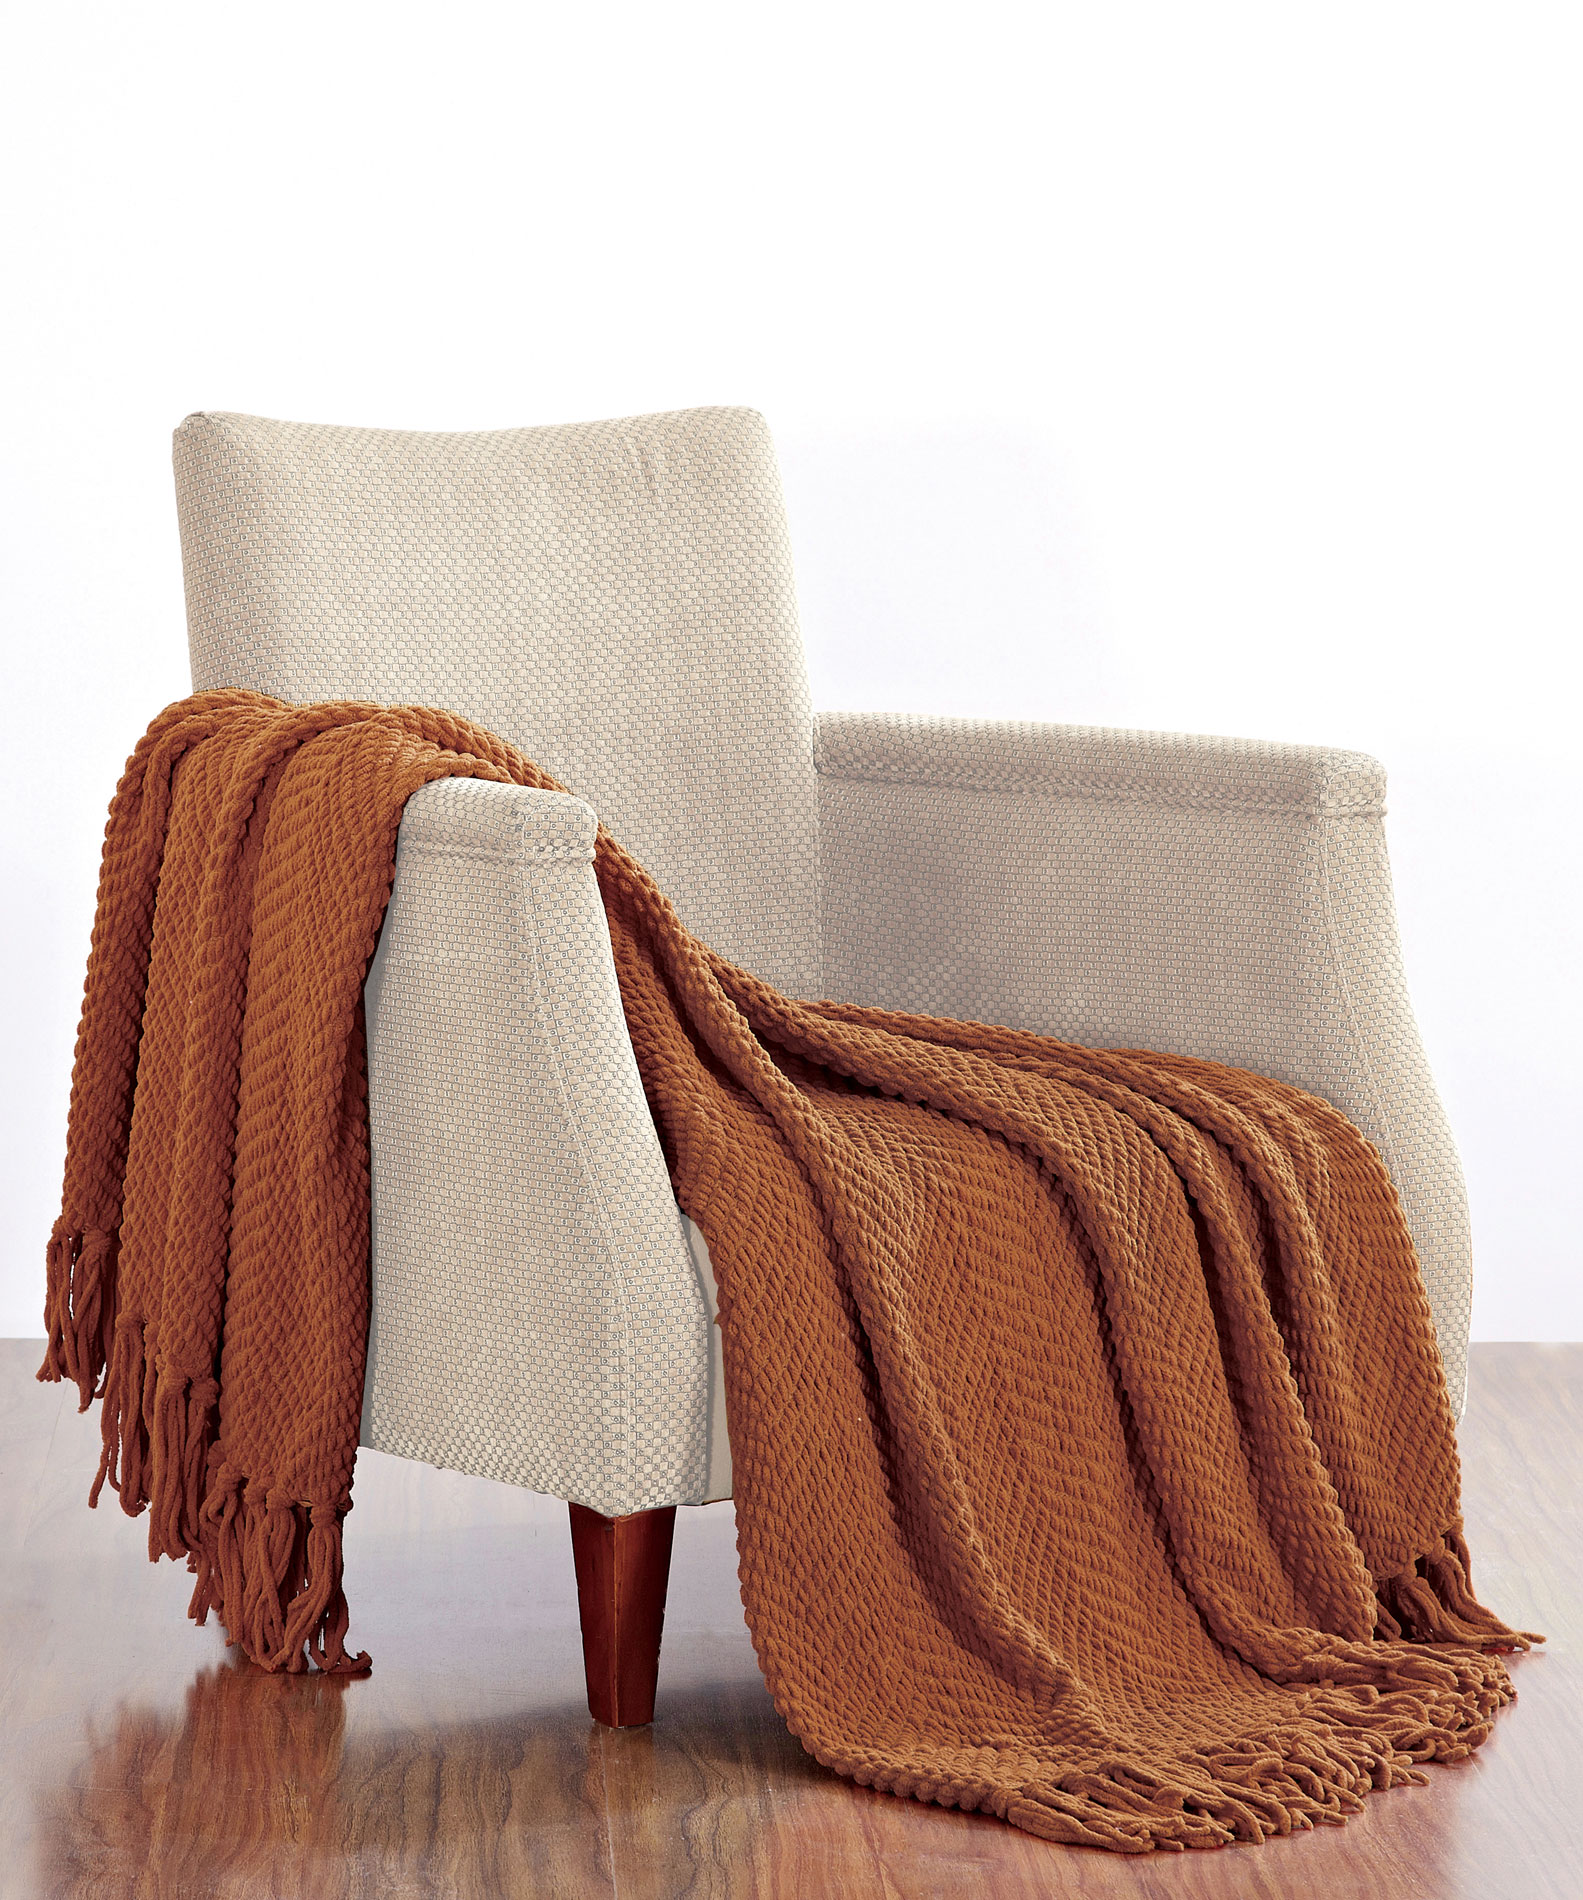 Knitted Tweed Throws